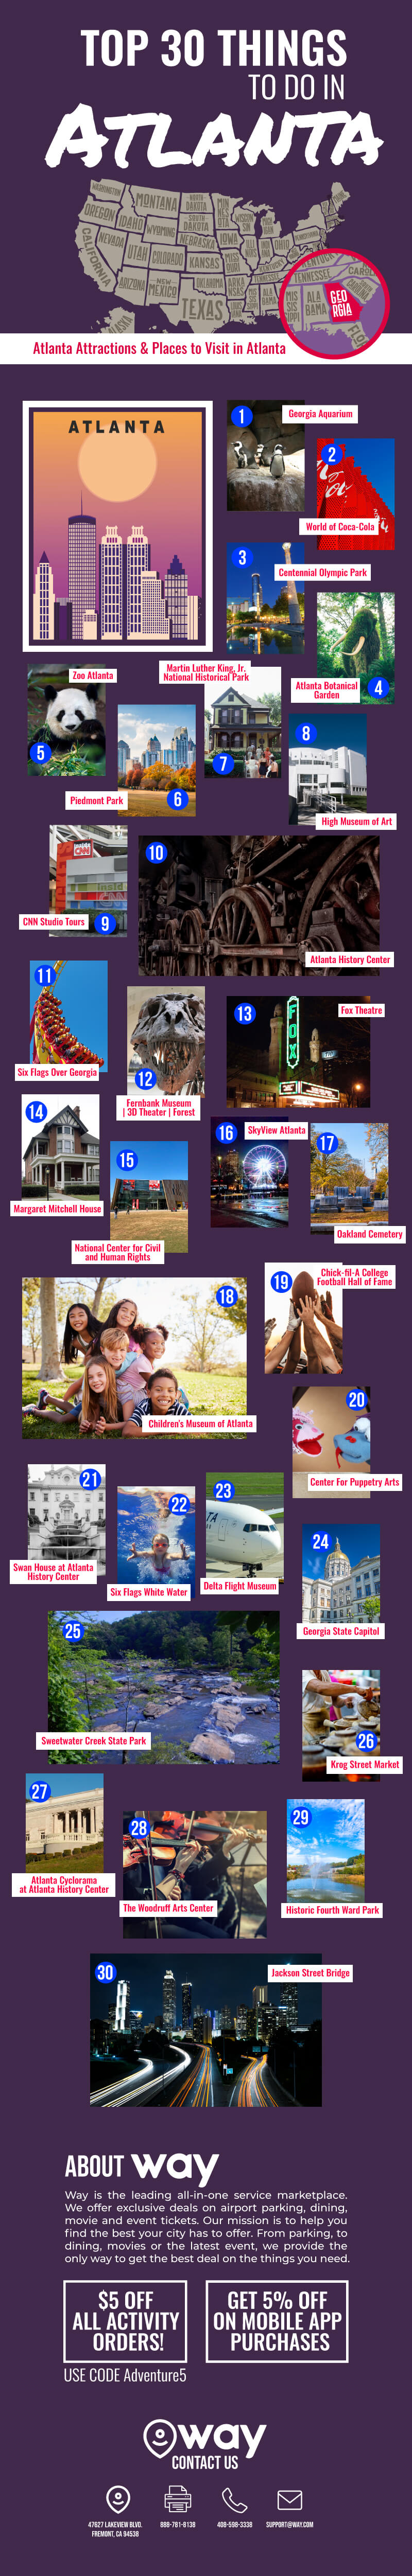 Top-Things-to-Do-in-Atlanta-infographic-plaza